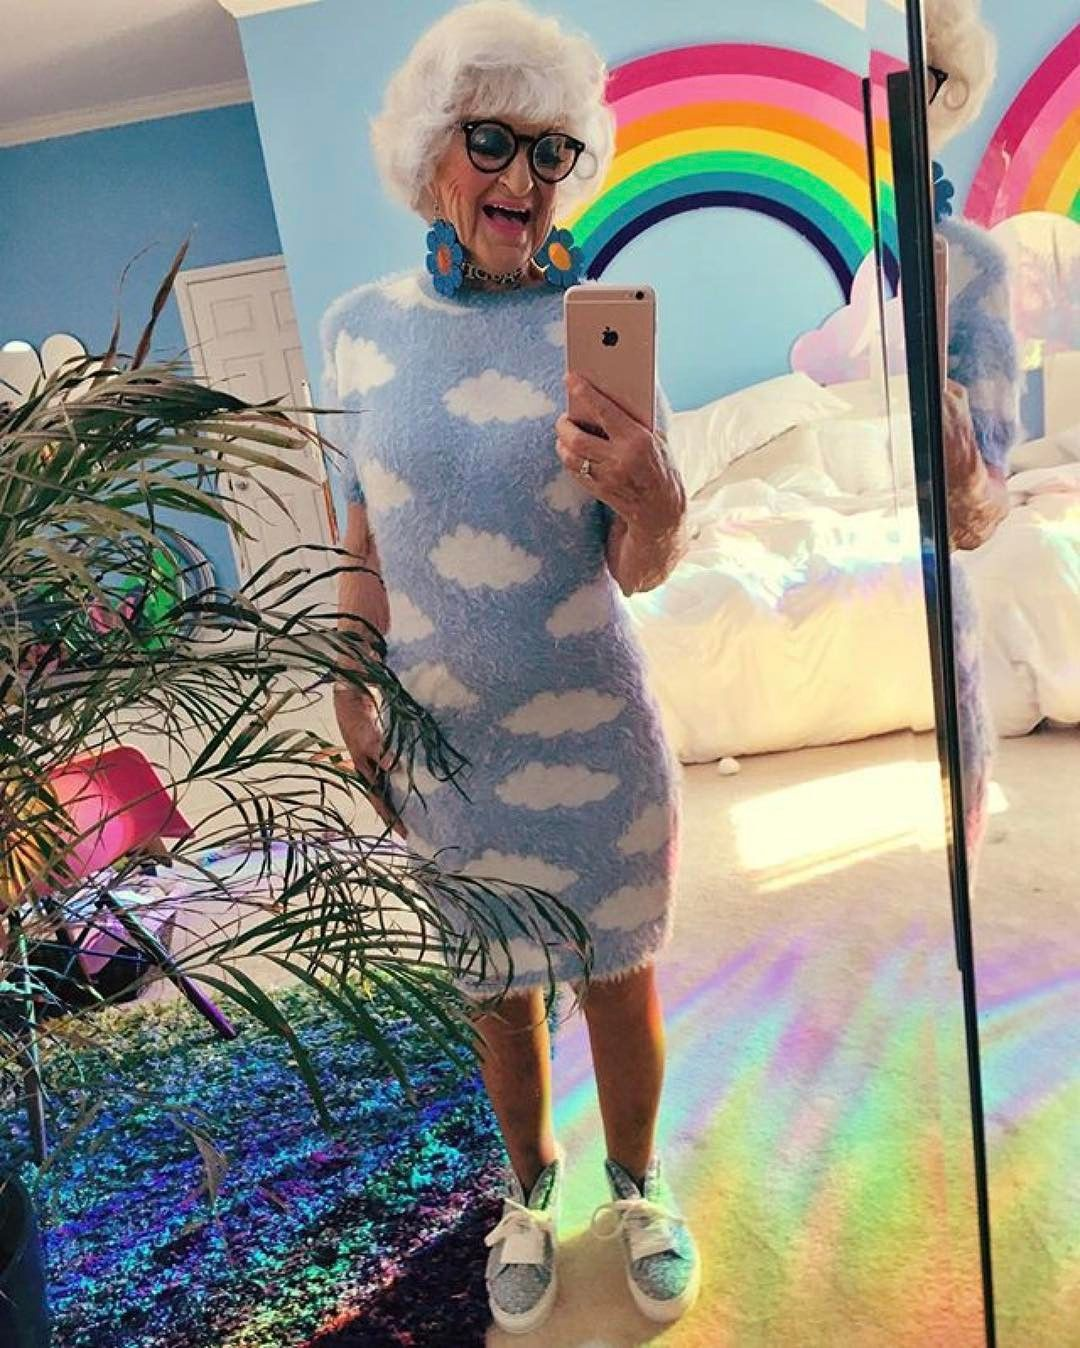 Youre never too old to have fun or dress the way you want. ᔕᕼE ᗩᒪᗯᗩYᔕ GETᔕ IT ᖇIGᕼT. ___________ the baddest gal  #Repost @baddiewinkle  gd morning  #baddiewinkle #badgirl #happyasf #asf